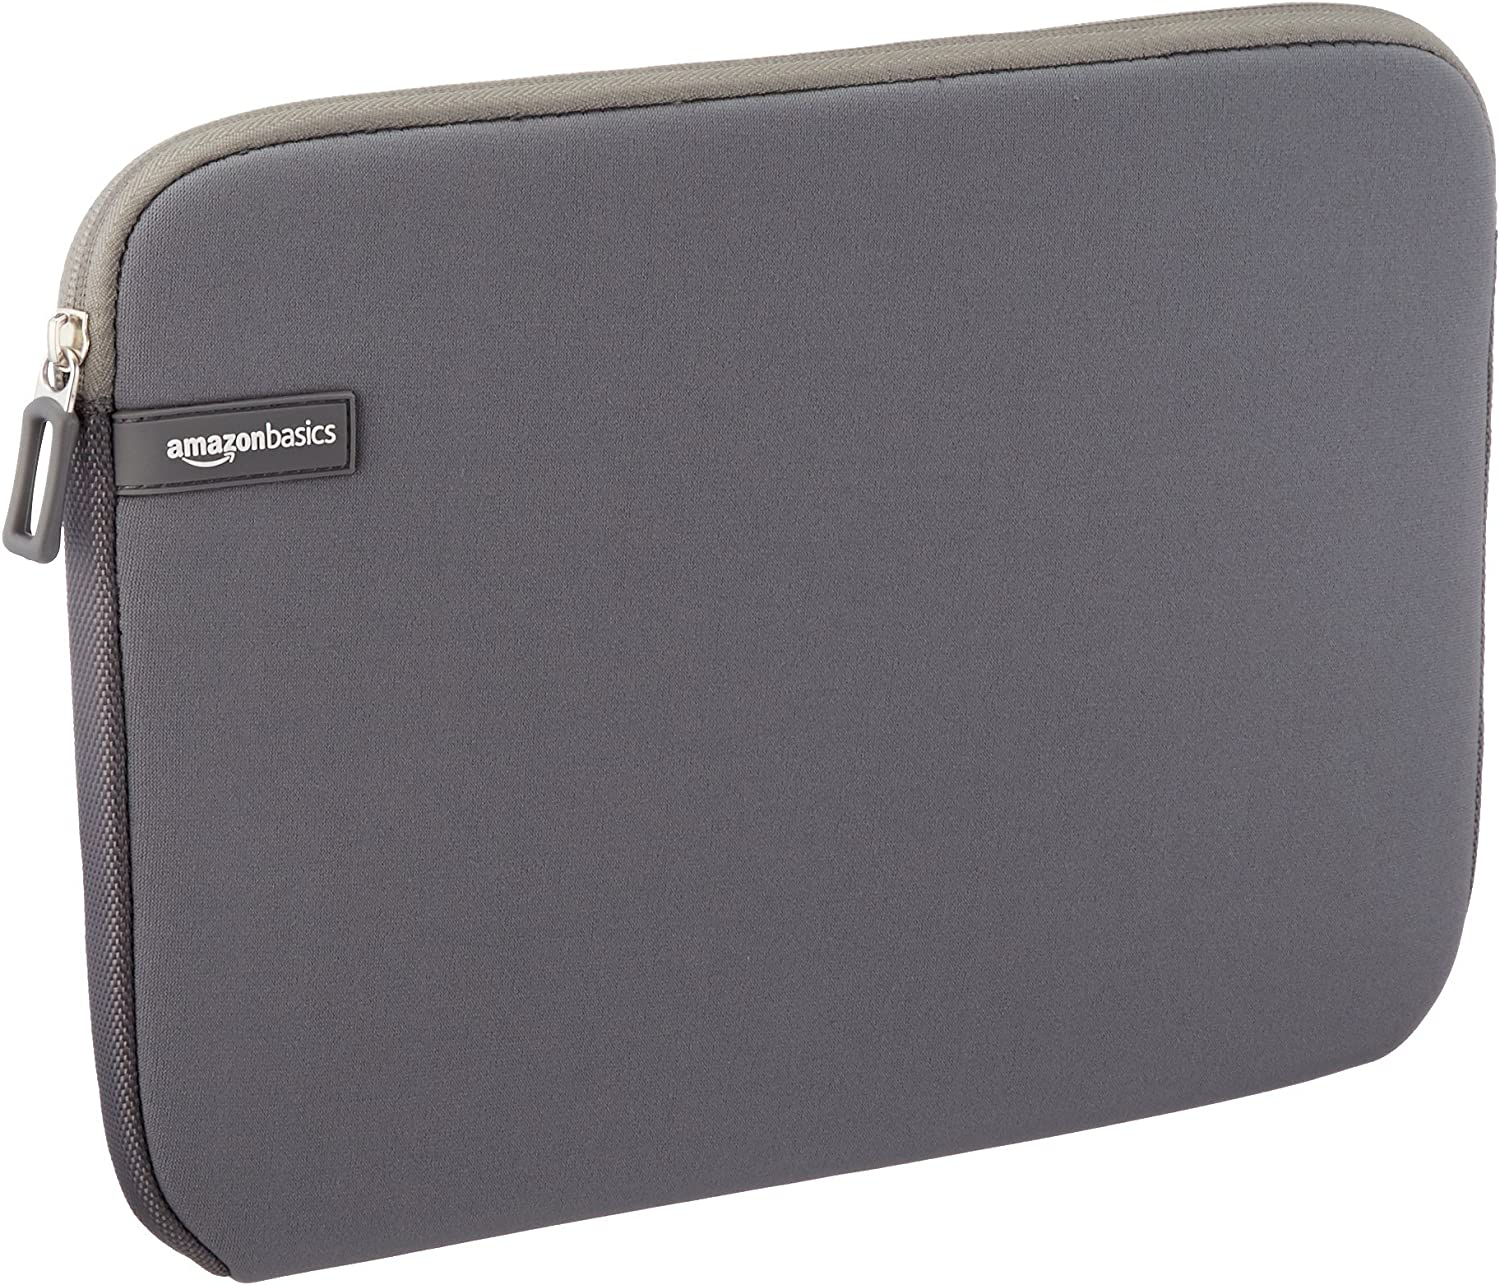 AmazonBasics 11.6-Inch Laptop Sleeve - Grey